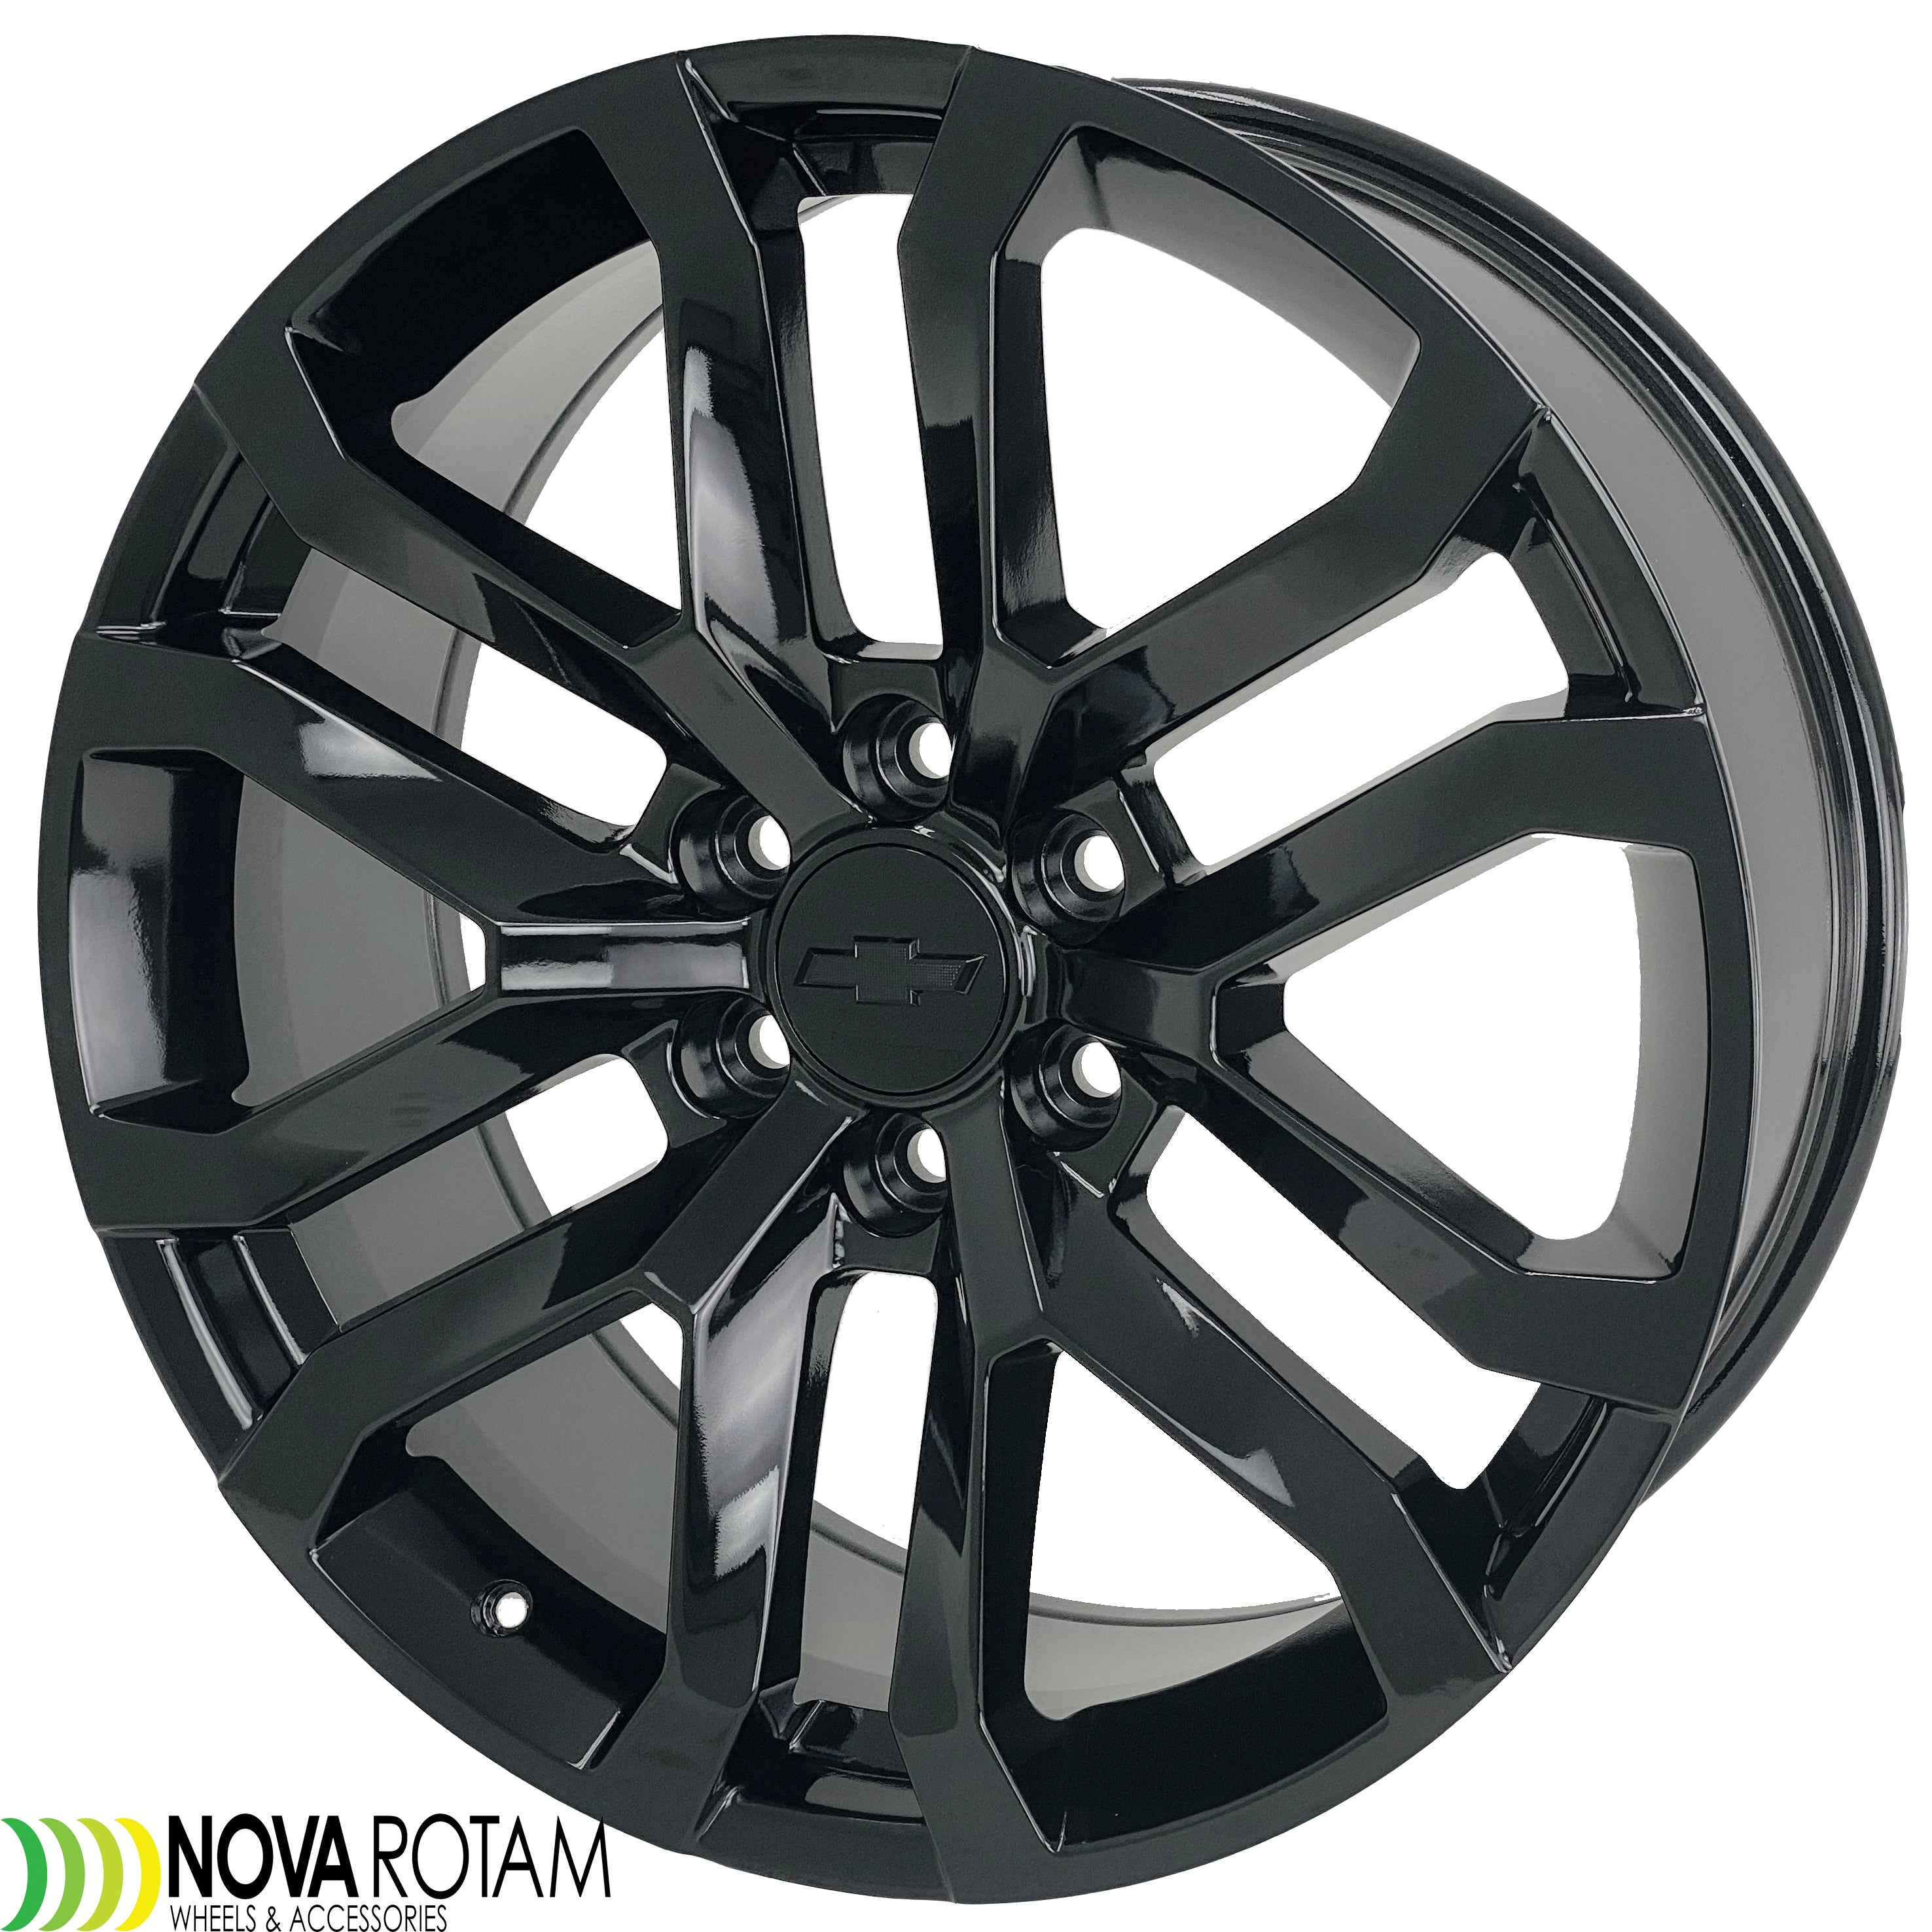 22 Black Wheels Rims Fits Chevy Silverado Gmc Sierra At4 Trailboss Yukon Denali Escalade 1999 2020 Nova Rotam